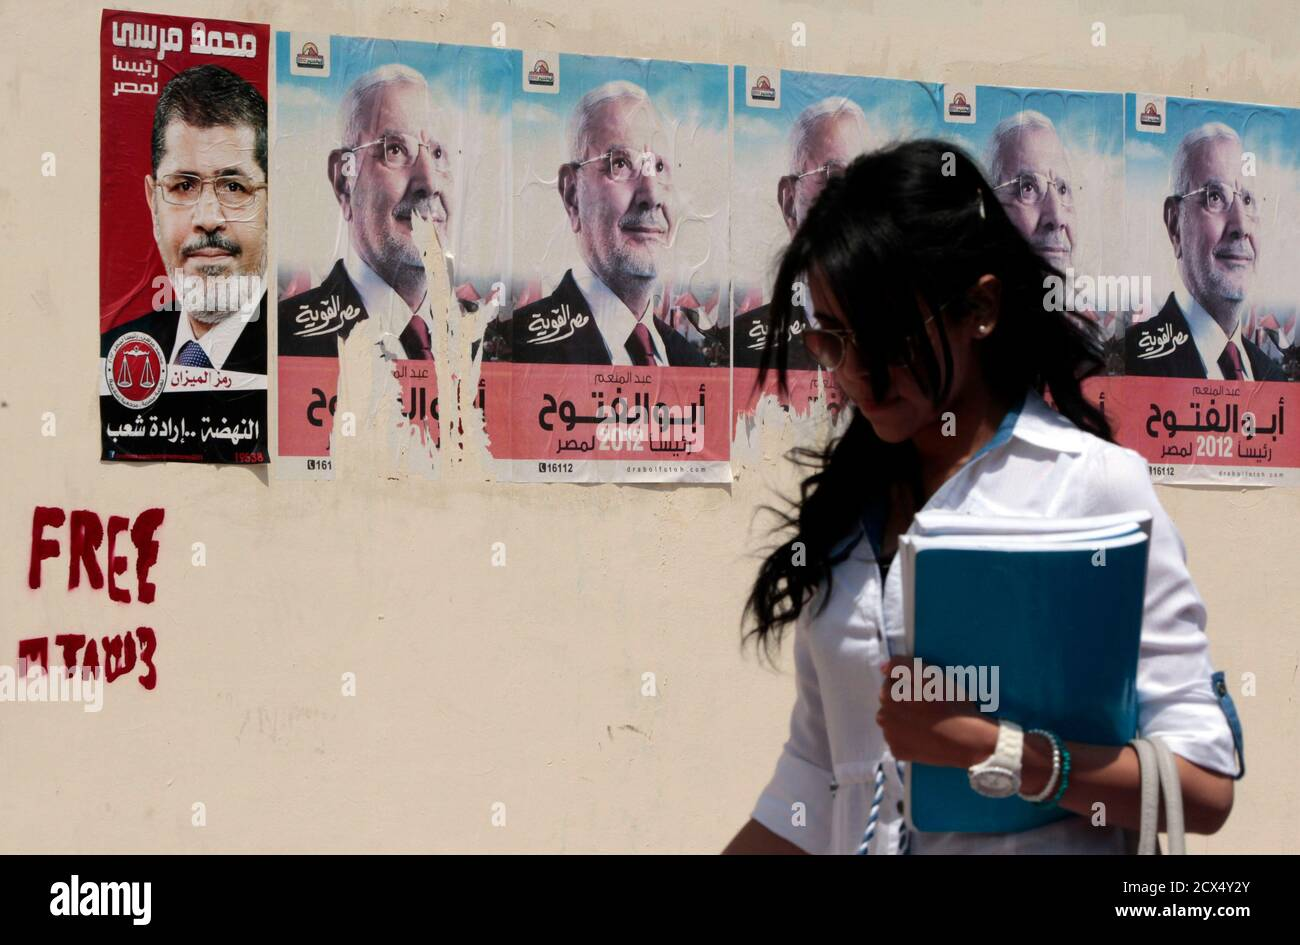 A woman walks past campaign posters of Mohamed Mursi (L), presidential candidate and head of the Muslim Brotherhood's political party and Abdel Moneim Abu El Fotouh, presidential candidate and a former leader of the Muslim Brotherhood, in Cairo May 7, 2012. Voting starts on May 23-24 in the election to choose a new president after Hosni Mubarak was turfed out of office last year. REUTERS/Amr Abdallah Dalsh  (EGYPT - Tags: POLITICS ELECTIONS) Stock Photo